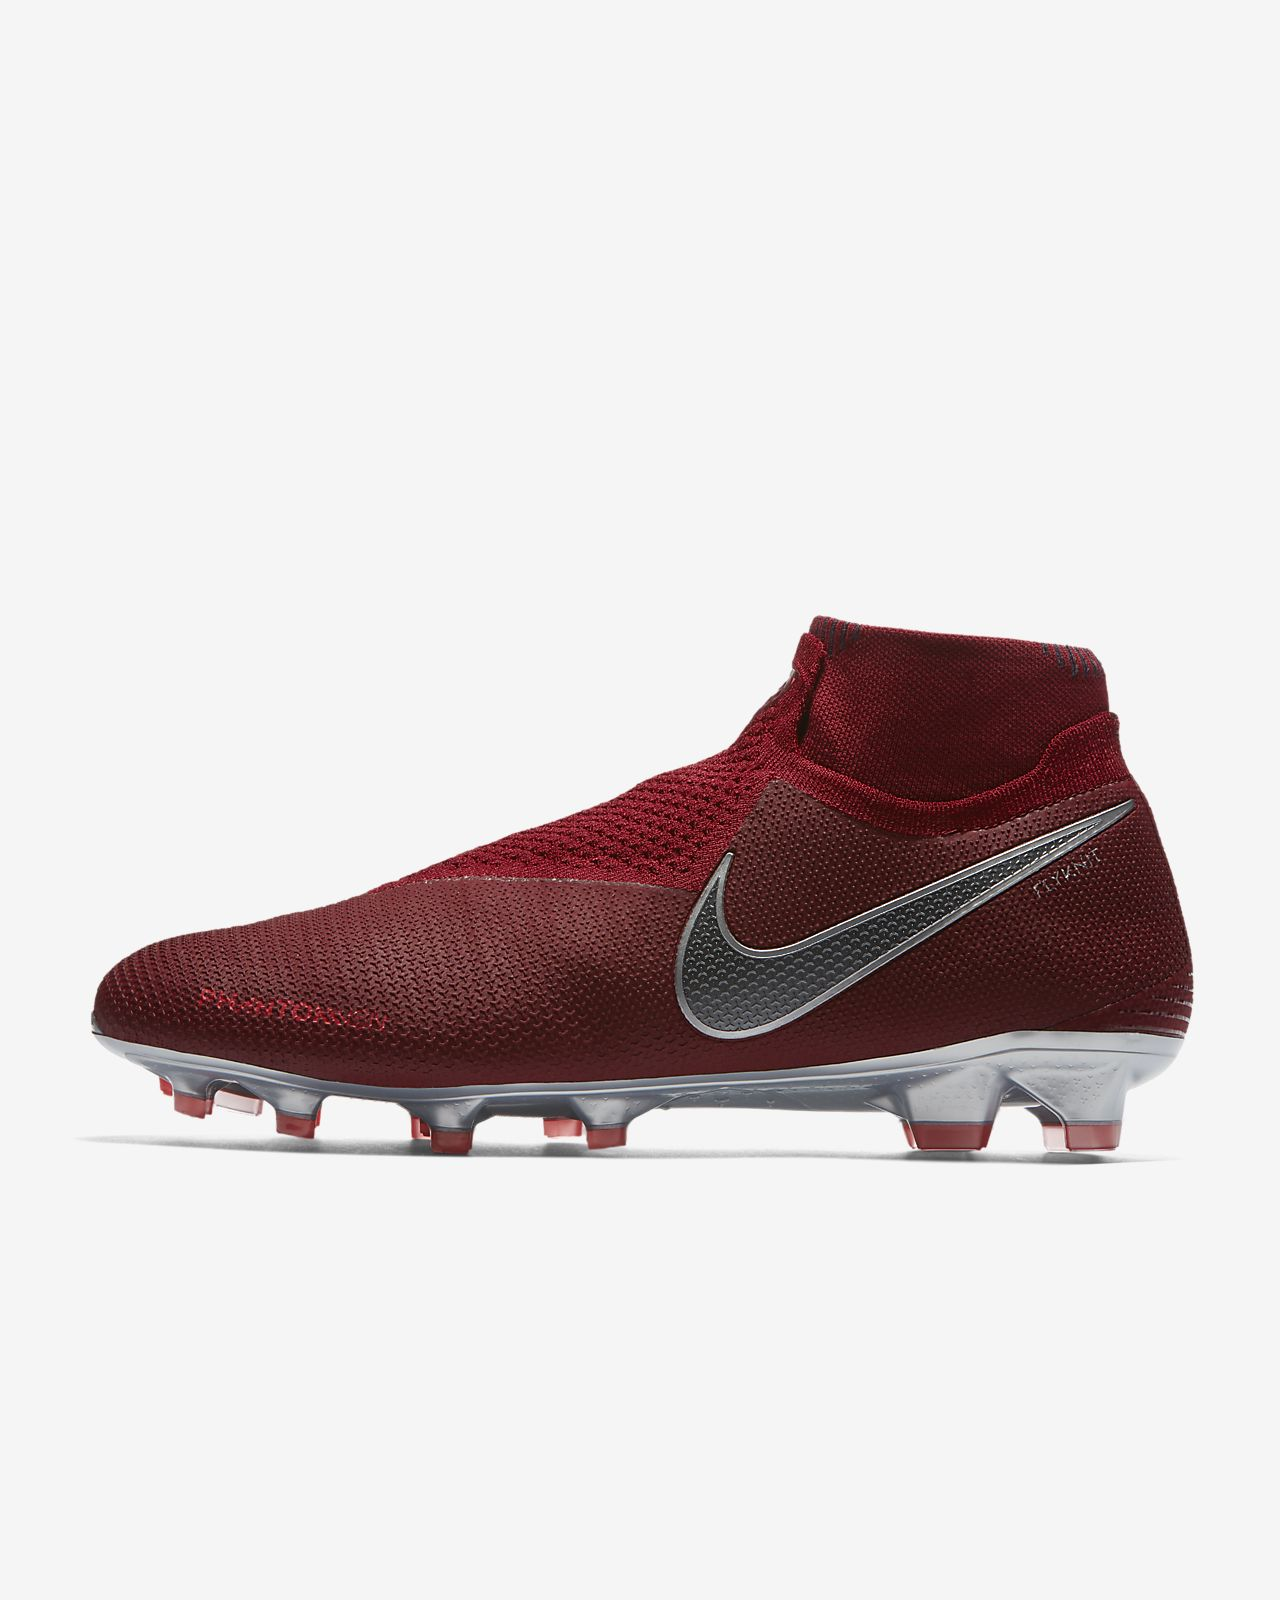 e8cd02794 ... Chaussure de football à crampons pour terrain sec Nike PhantomVSN Vision  Elite Dynamic Fit Game Over